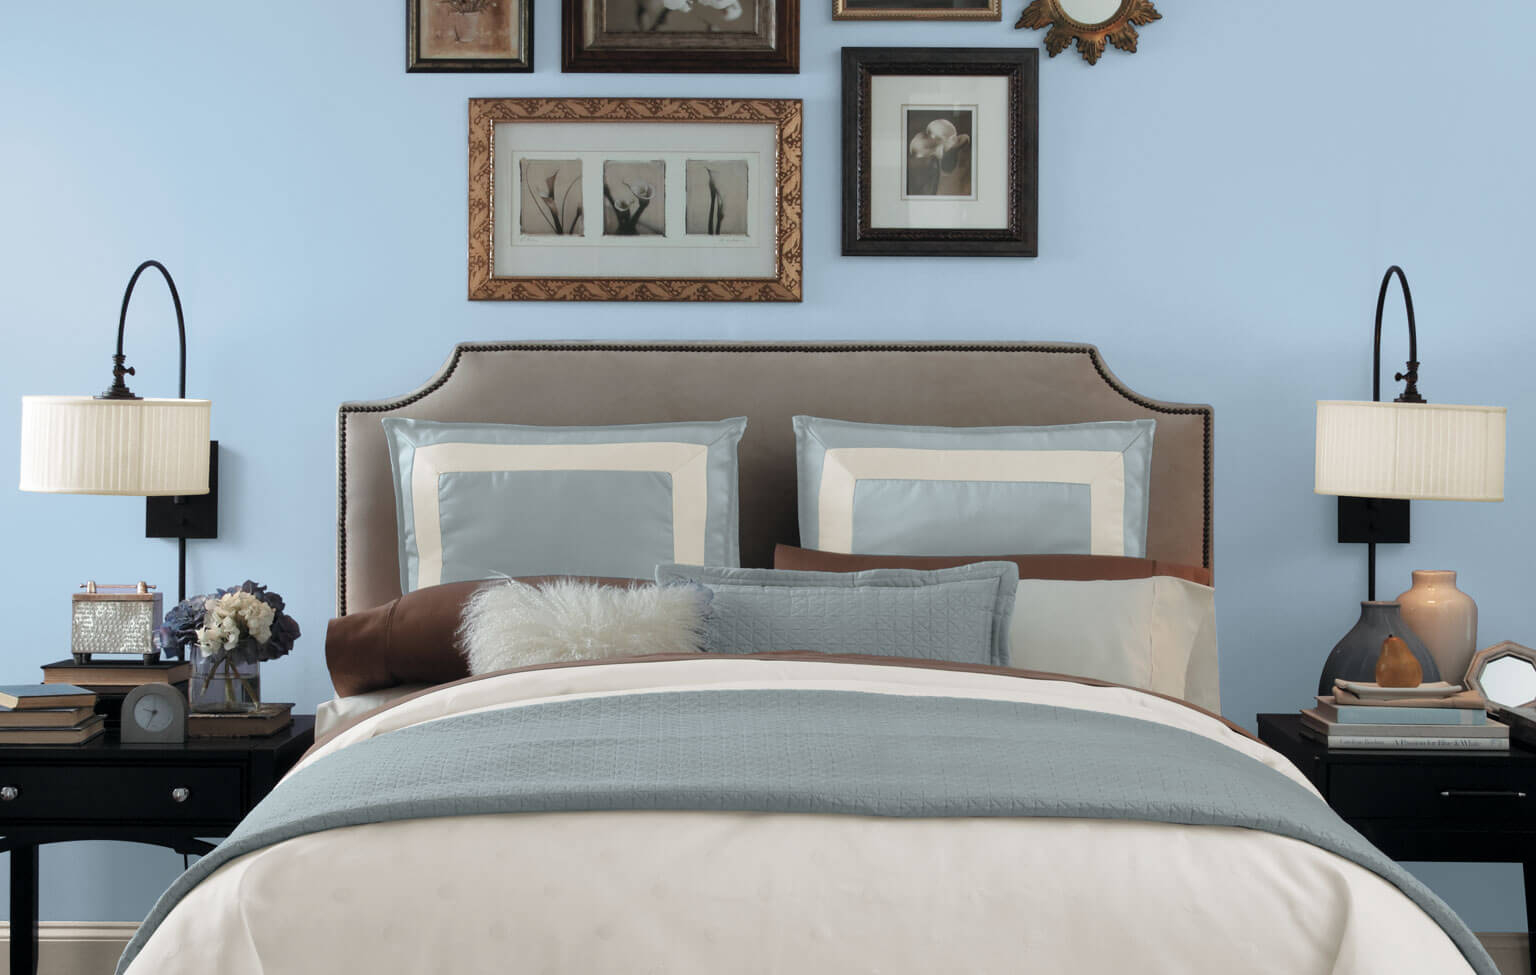 Bedroom Paint Color Schemes Home Decorating Painting Advice with regard to dimensions 1536 X 975